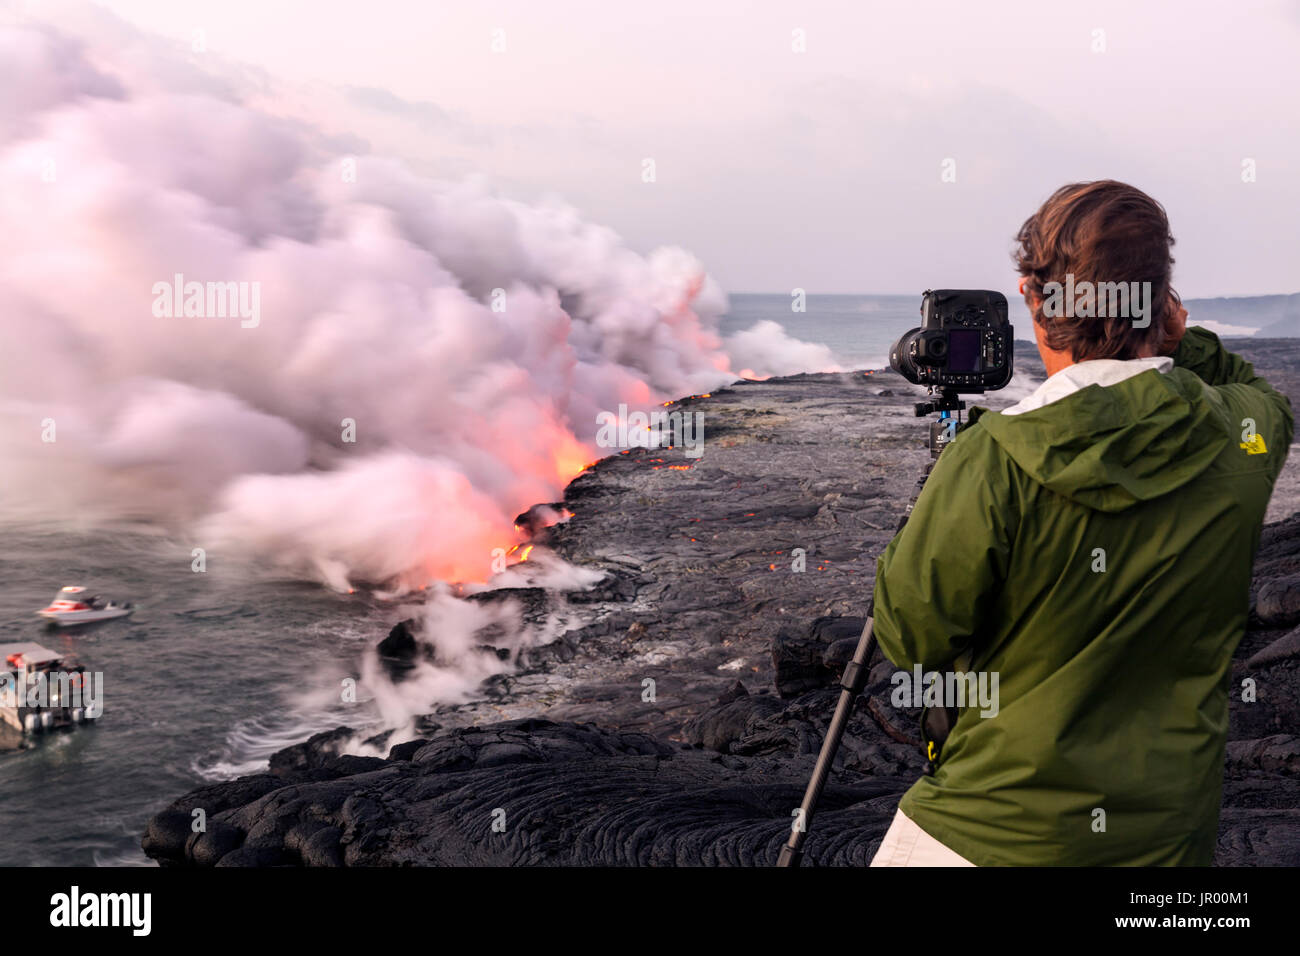 HI00344-00...HAWAI'I - Lava flowing into the Pacific Ocean from the East Riff Zoneof the Kilauea Volcano on the Island of Hawai'i. - Stock Image